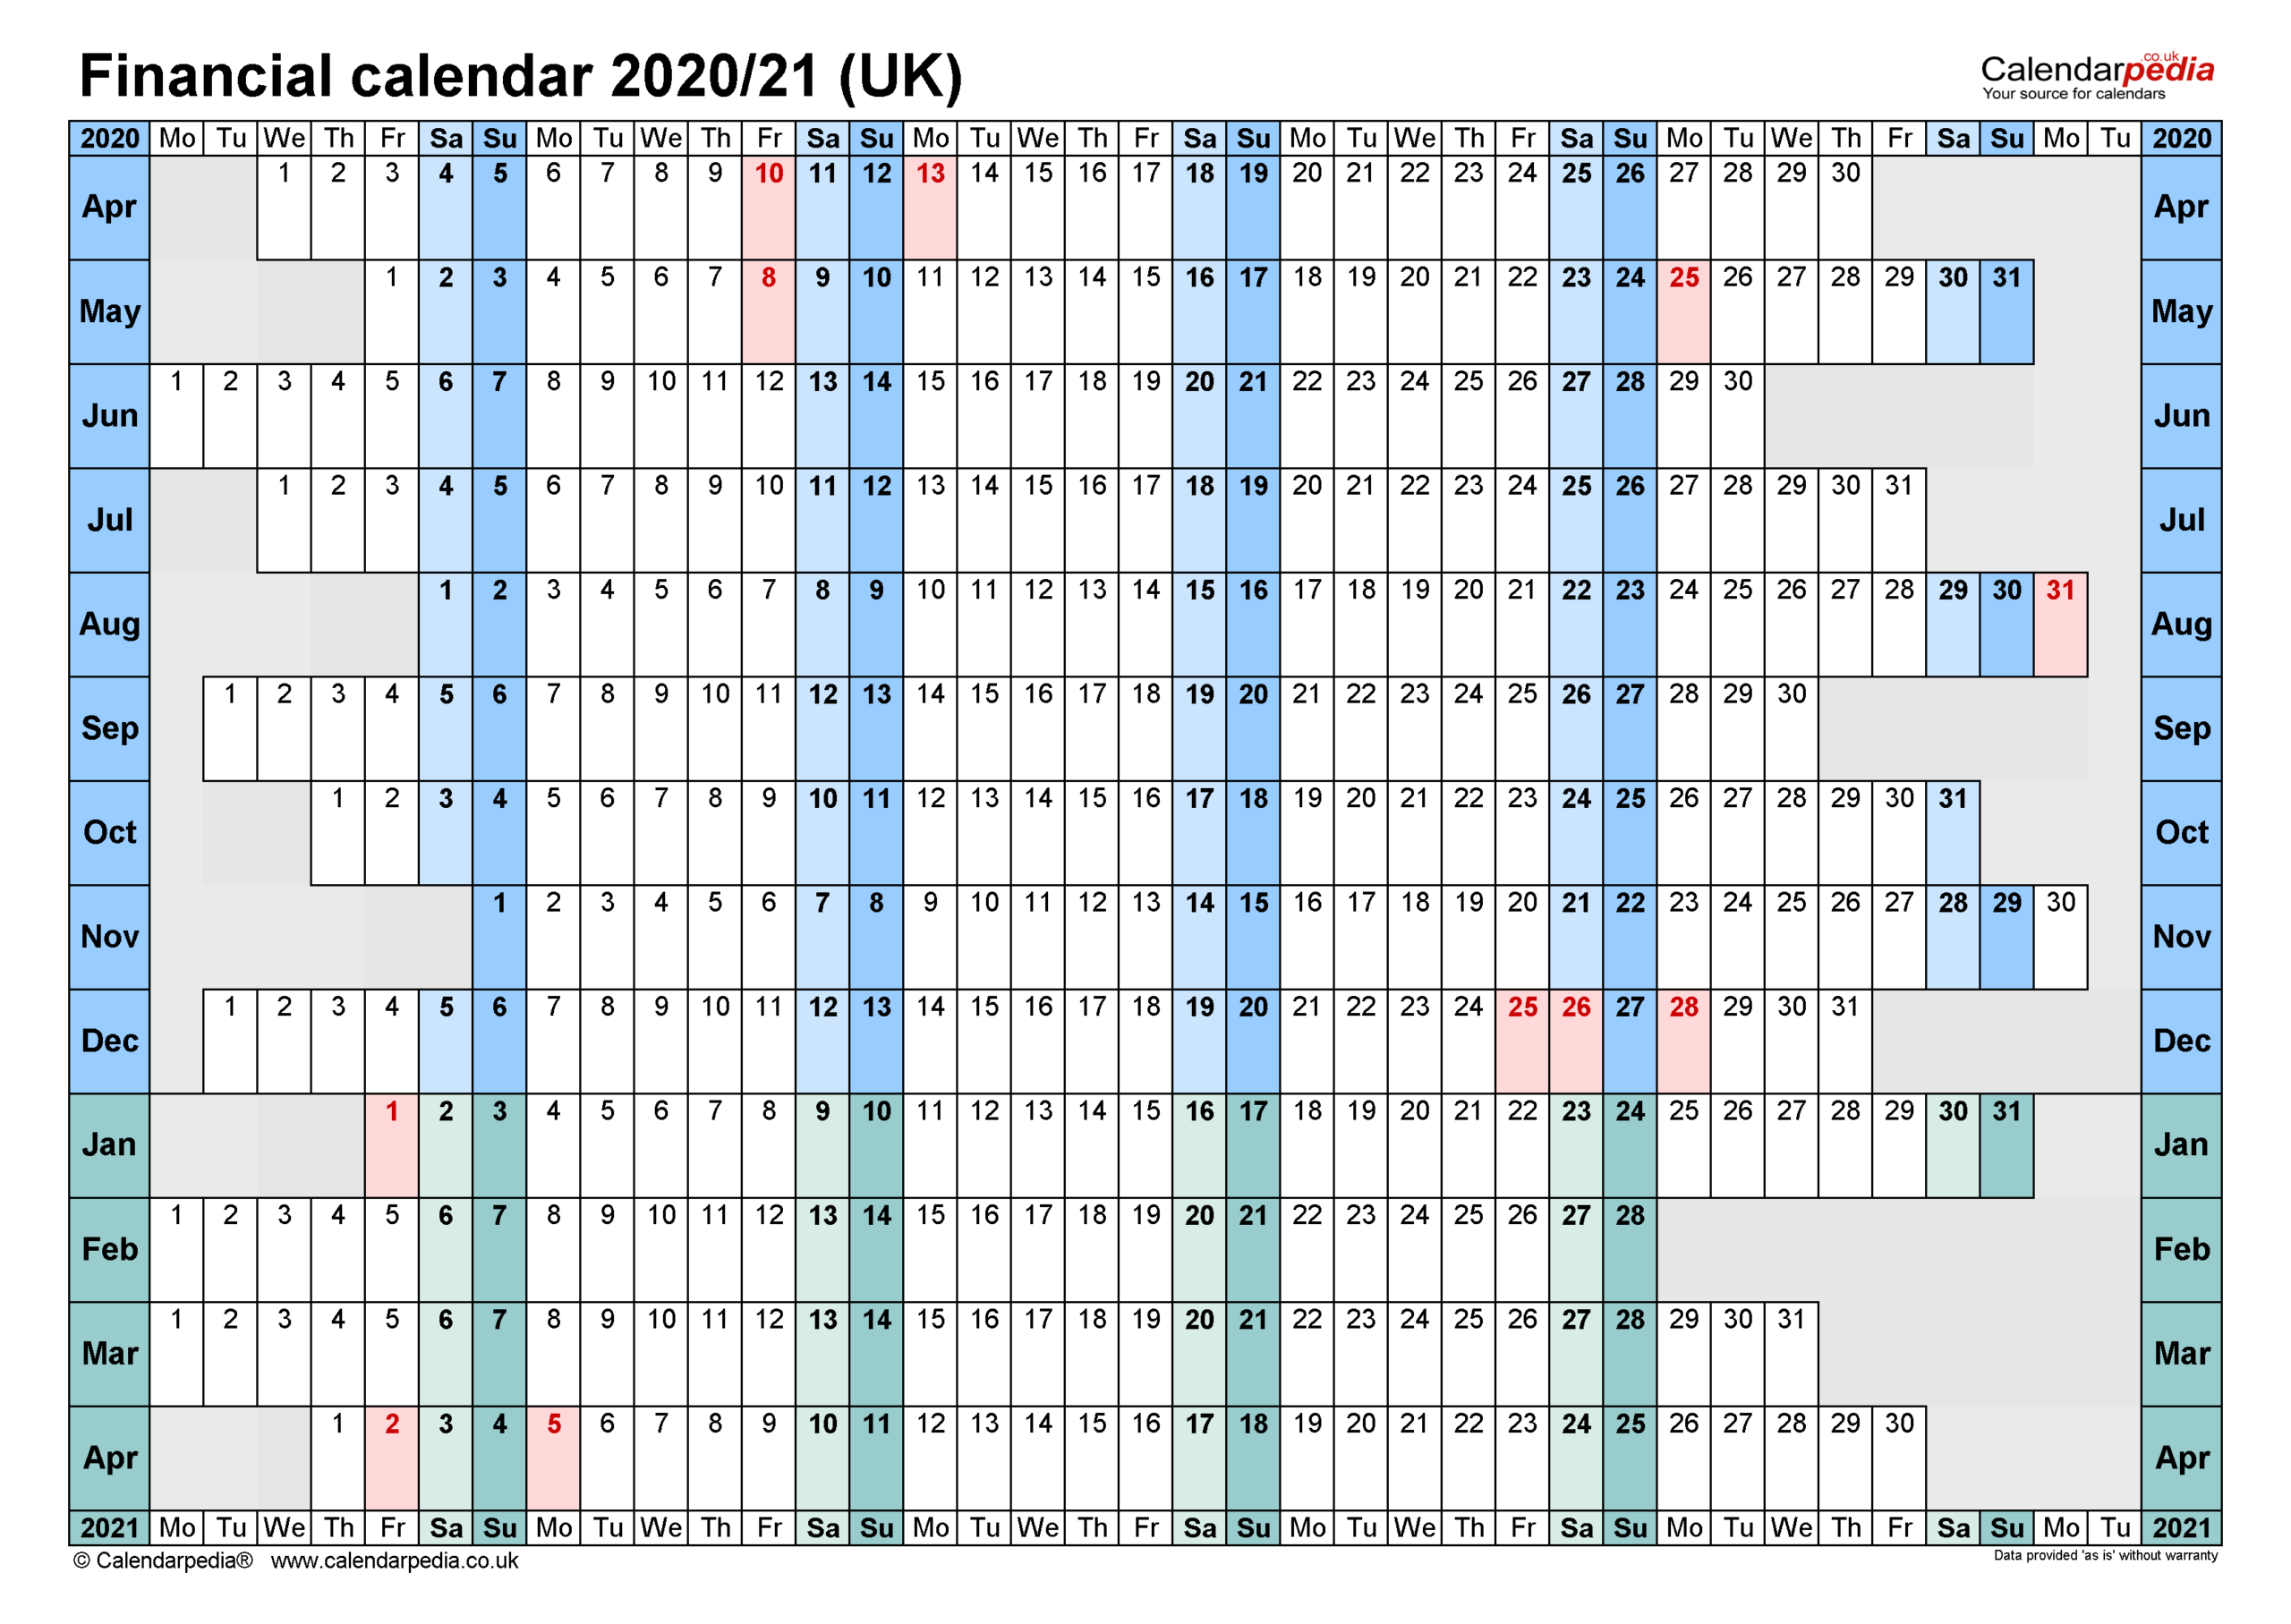 Financial Calendars 2020/21 Uk In Pdf Format